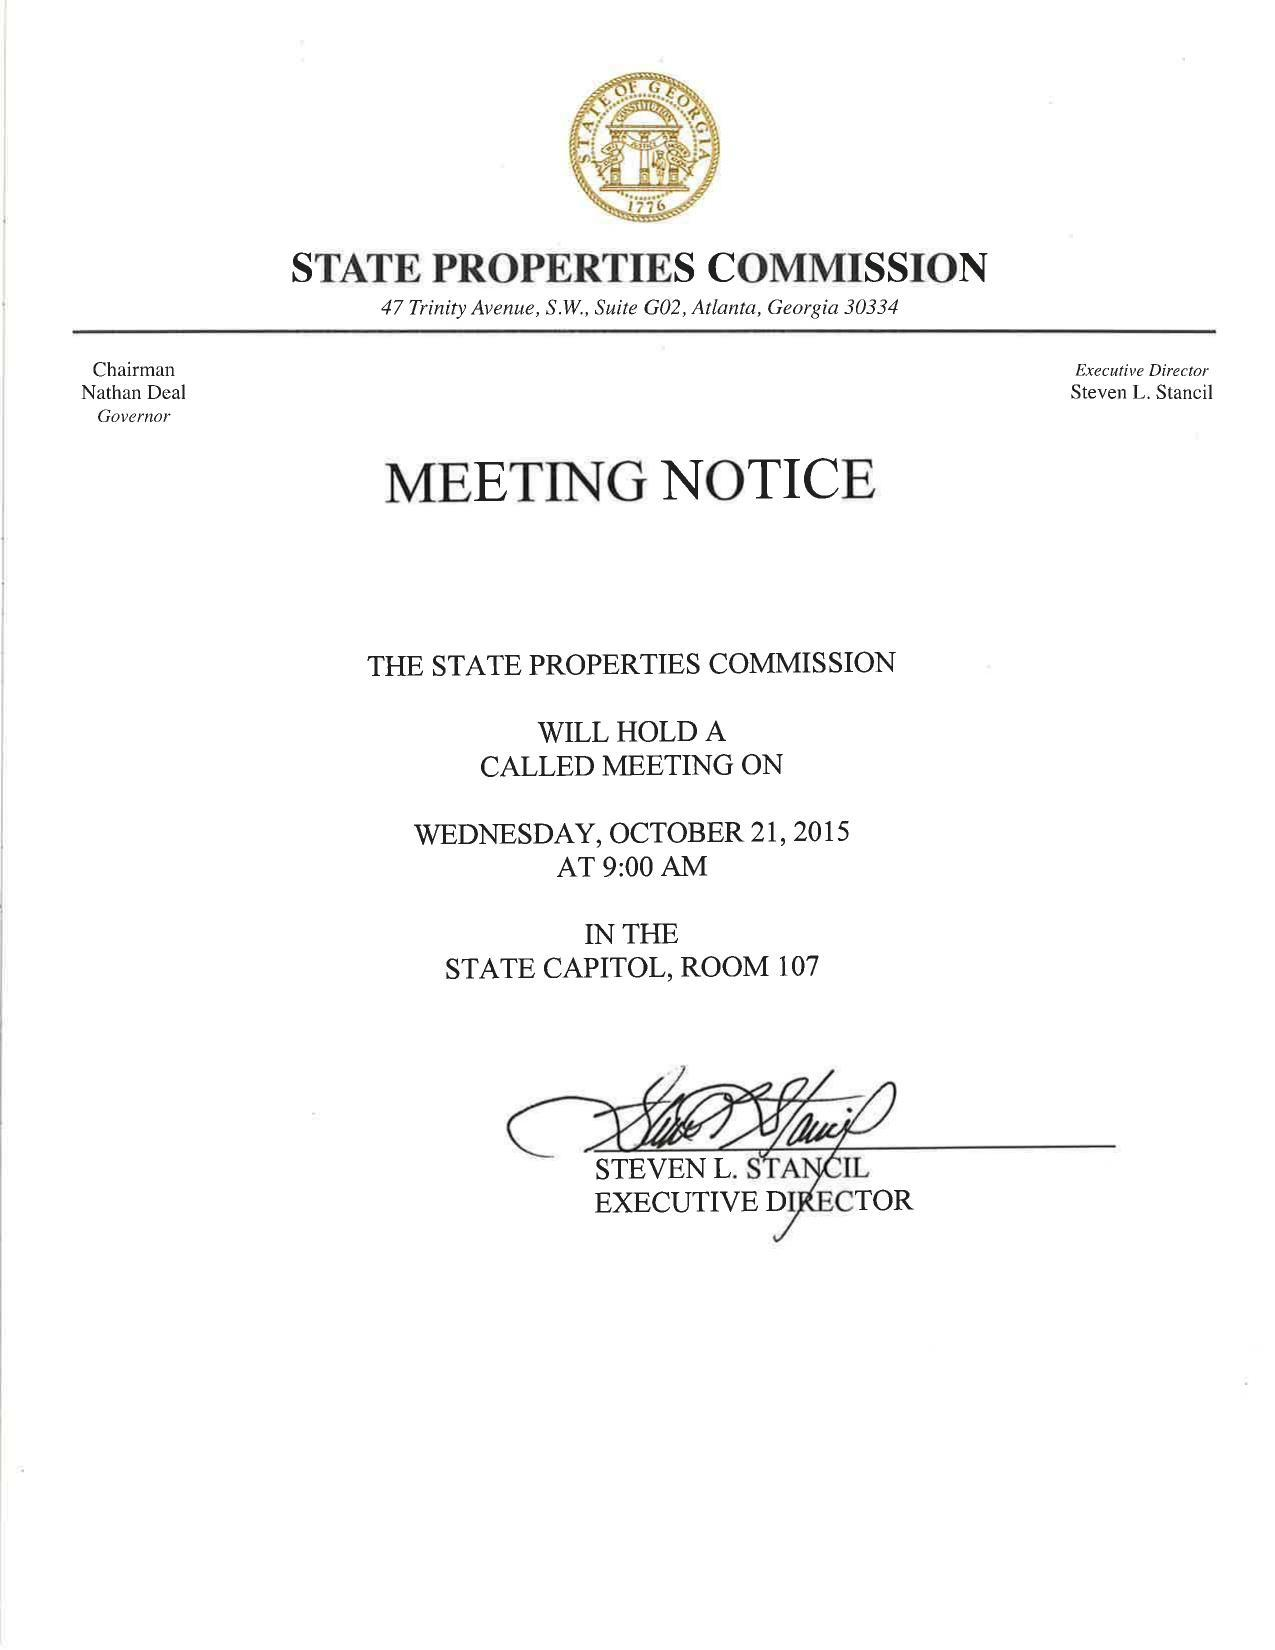 1275x1650 Notice, in Meeting, by State Properties Commission, for SpectraBusters.org, 21 October 2015